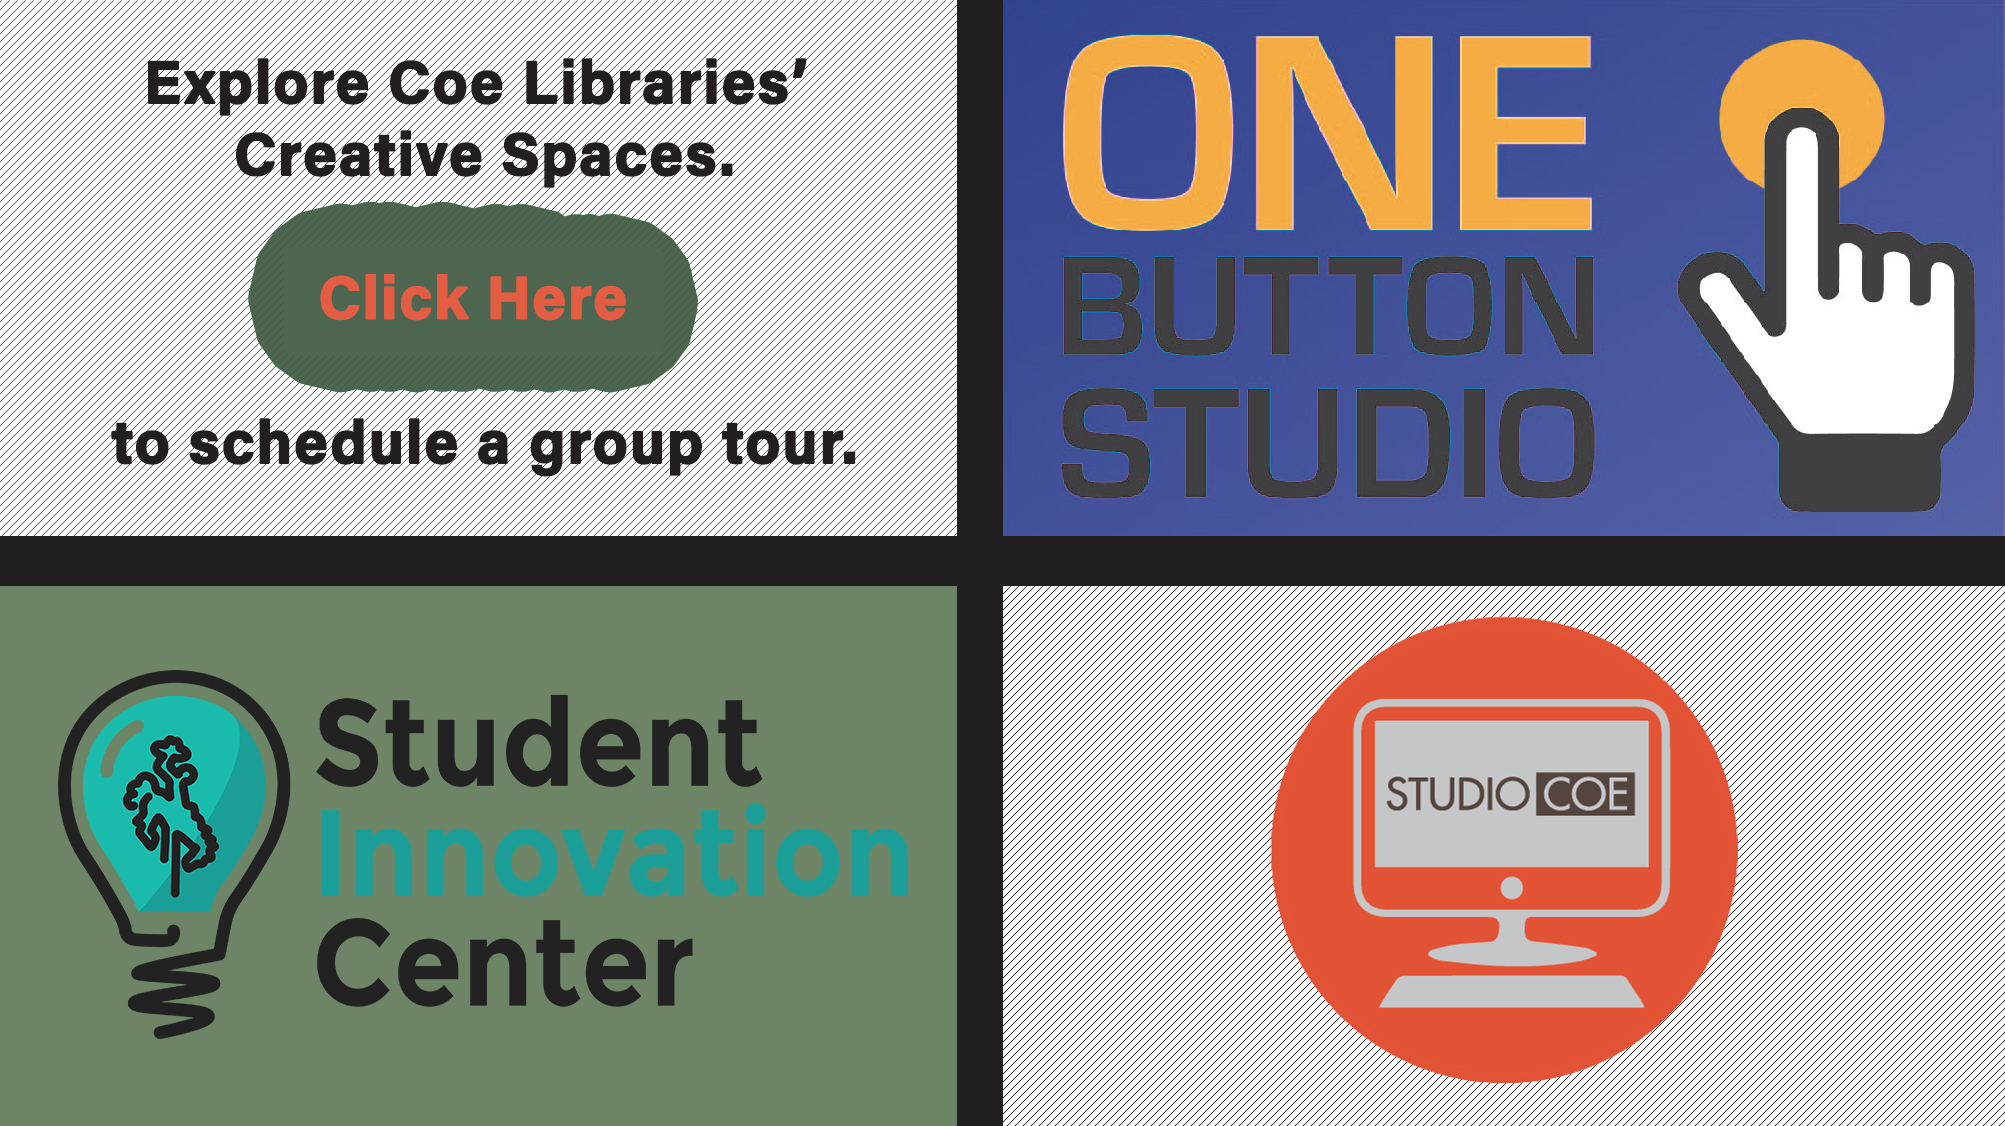 Schedule a tour for Coe's Creative Spaces.